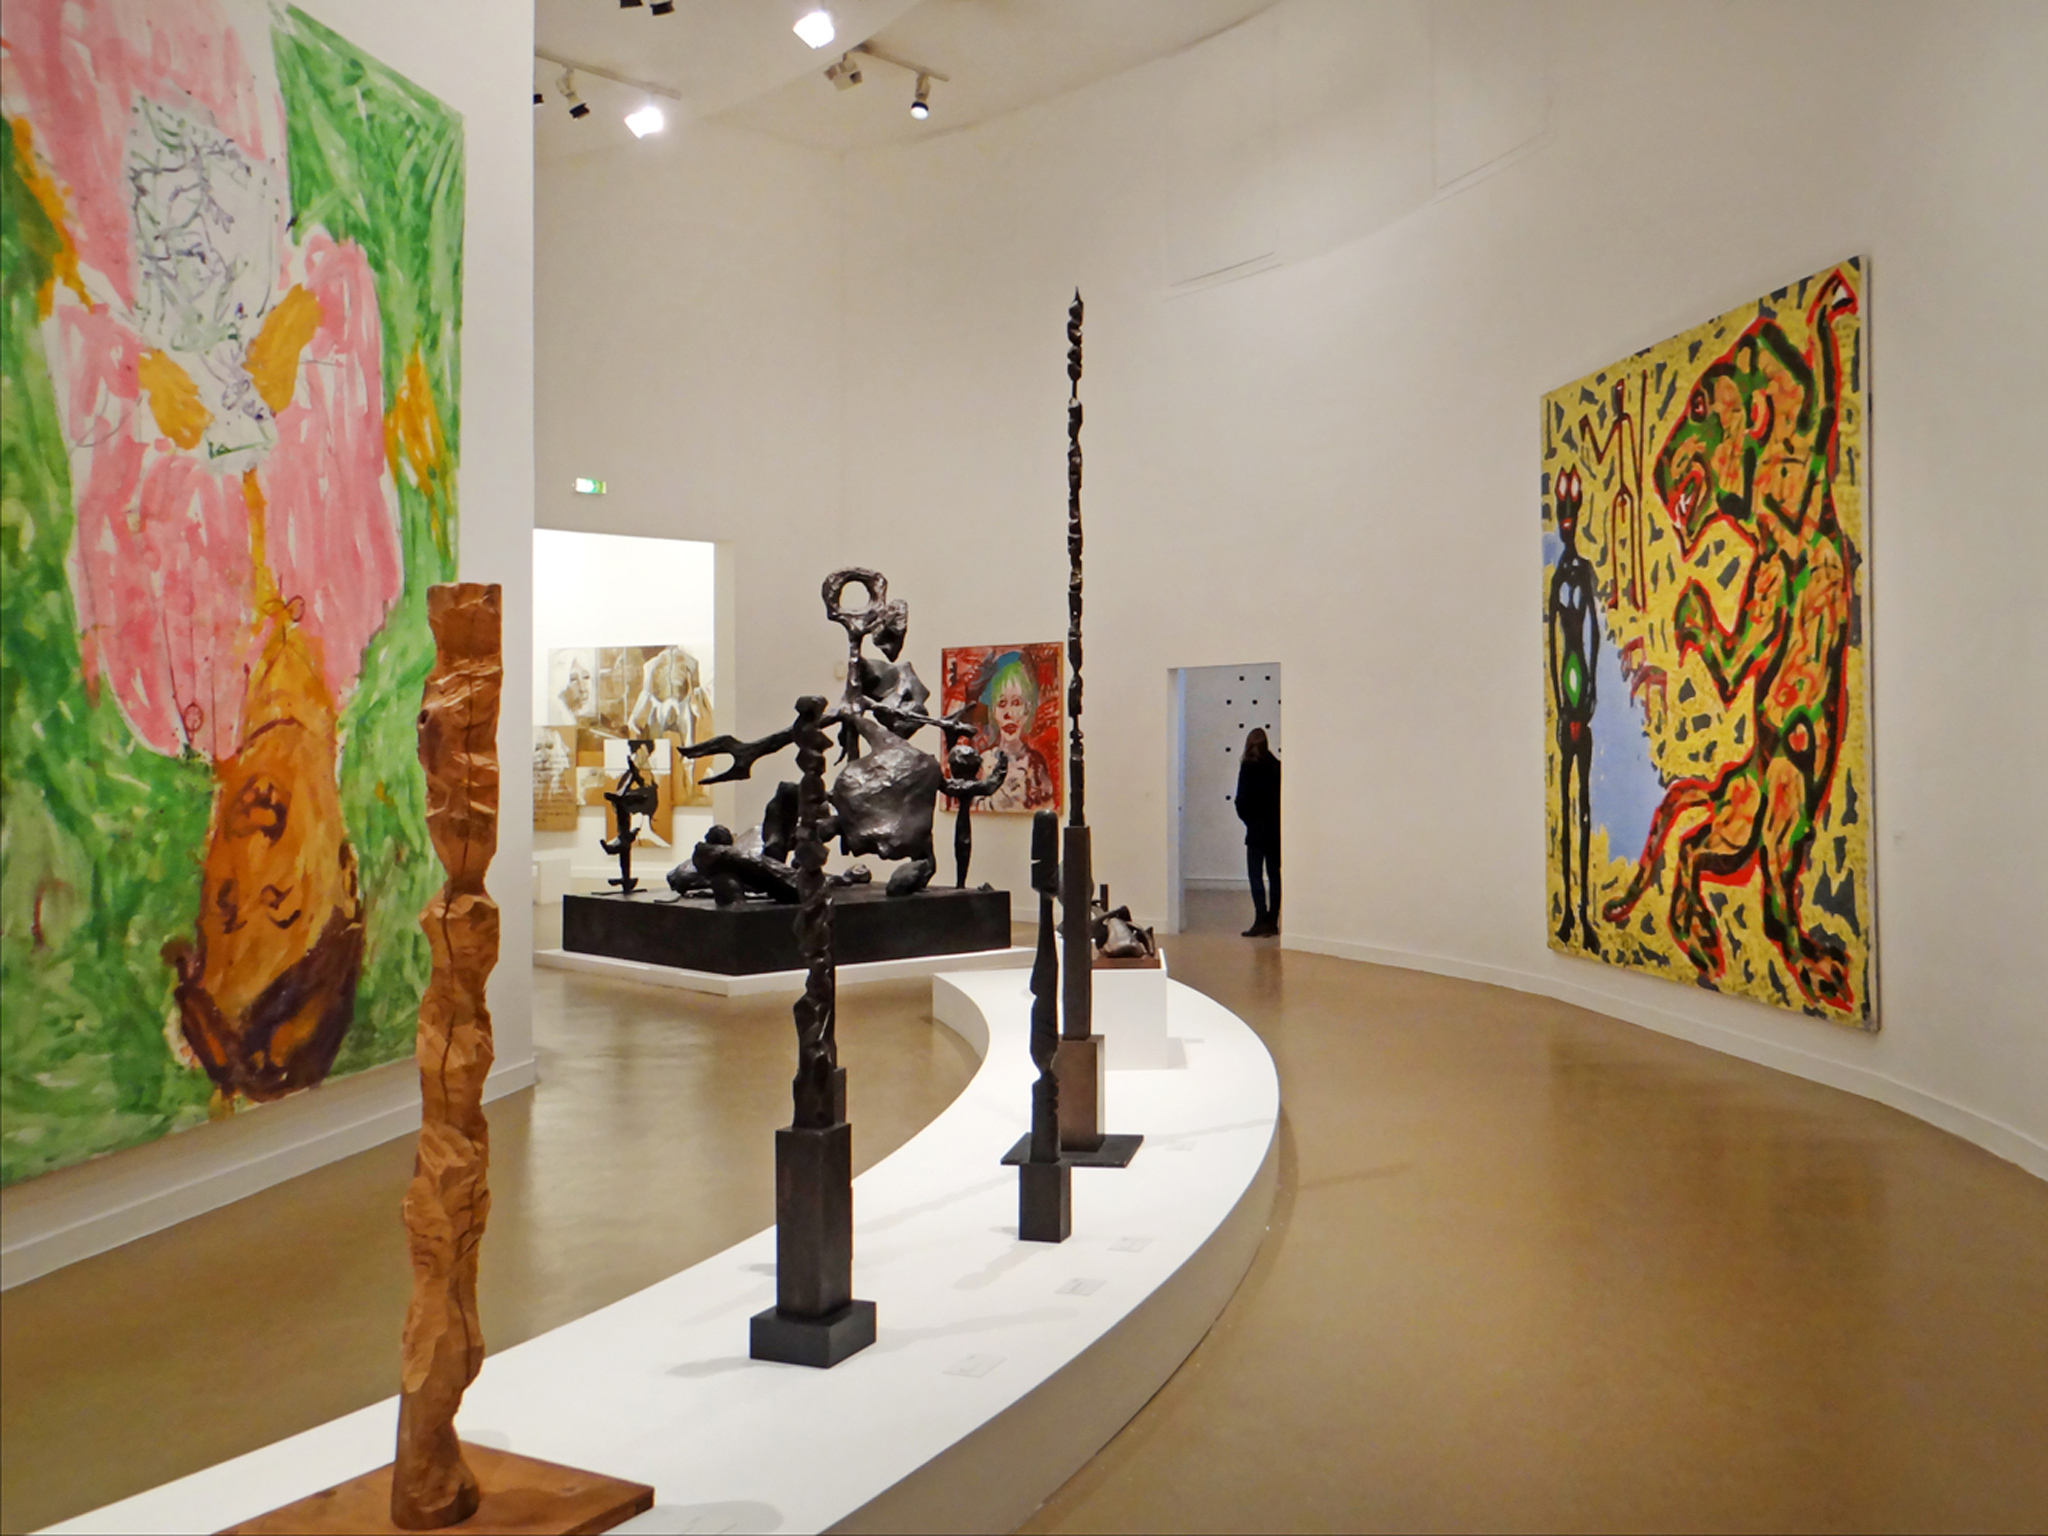 An exhibition at the Musée d'Art Moderne de la Ville de Paris